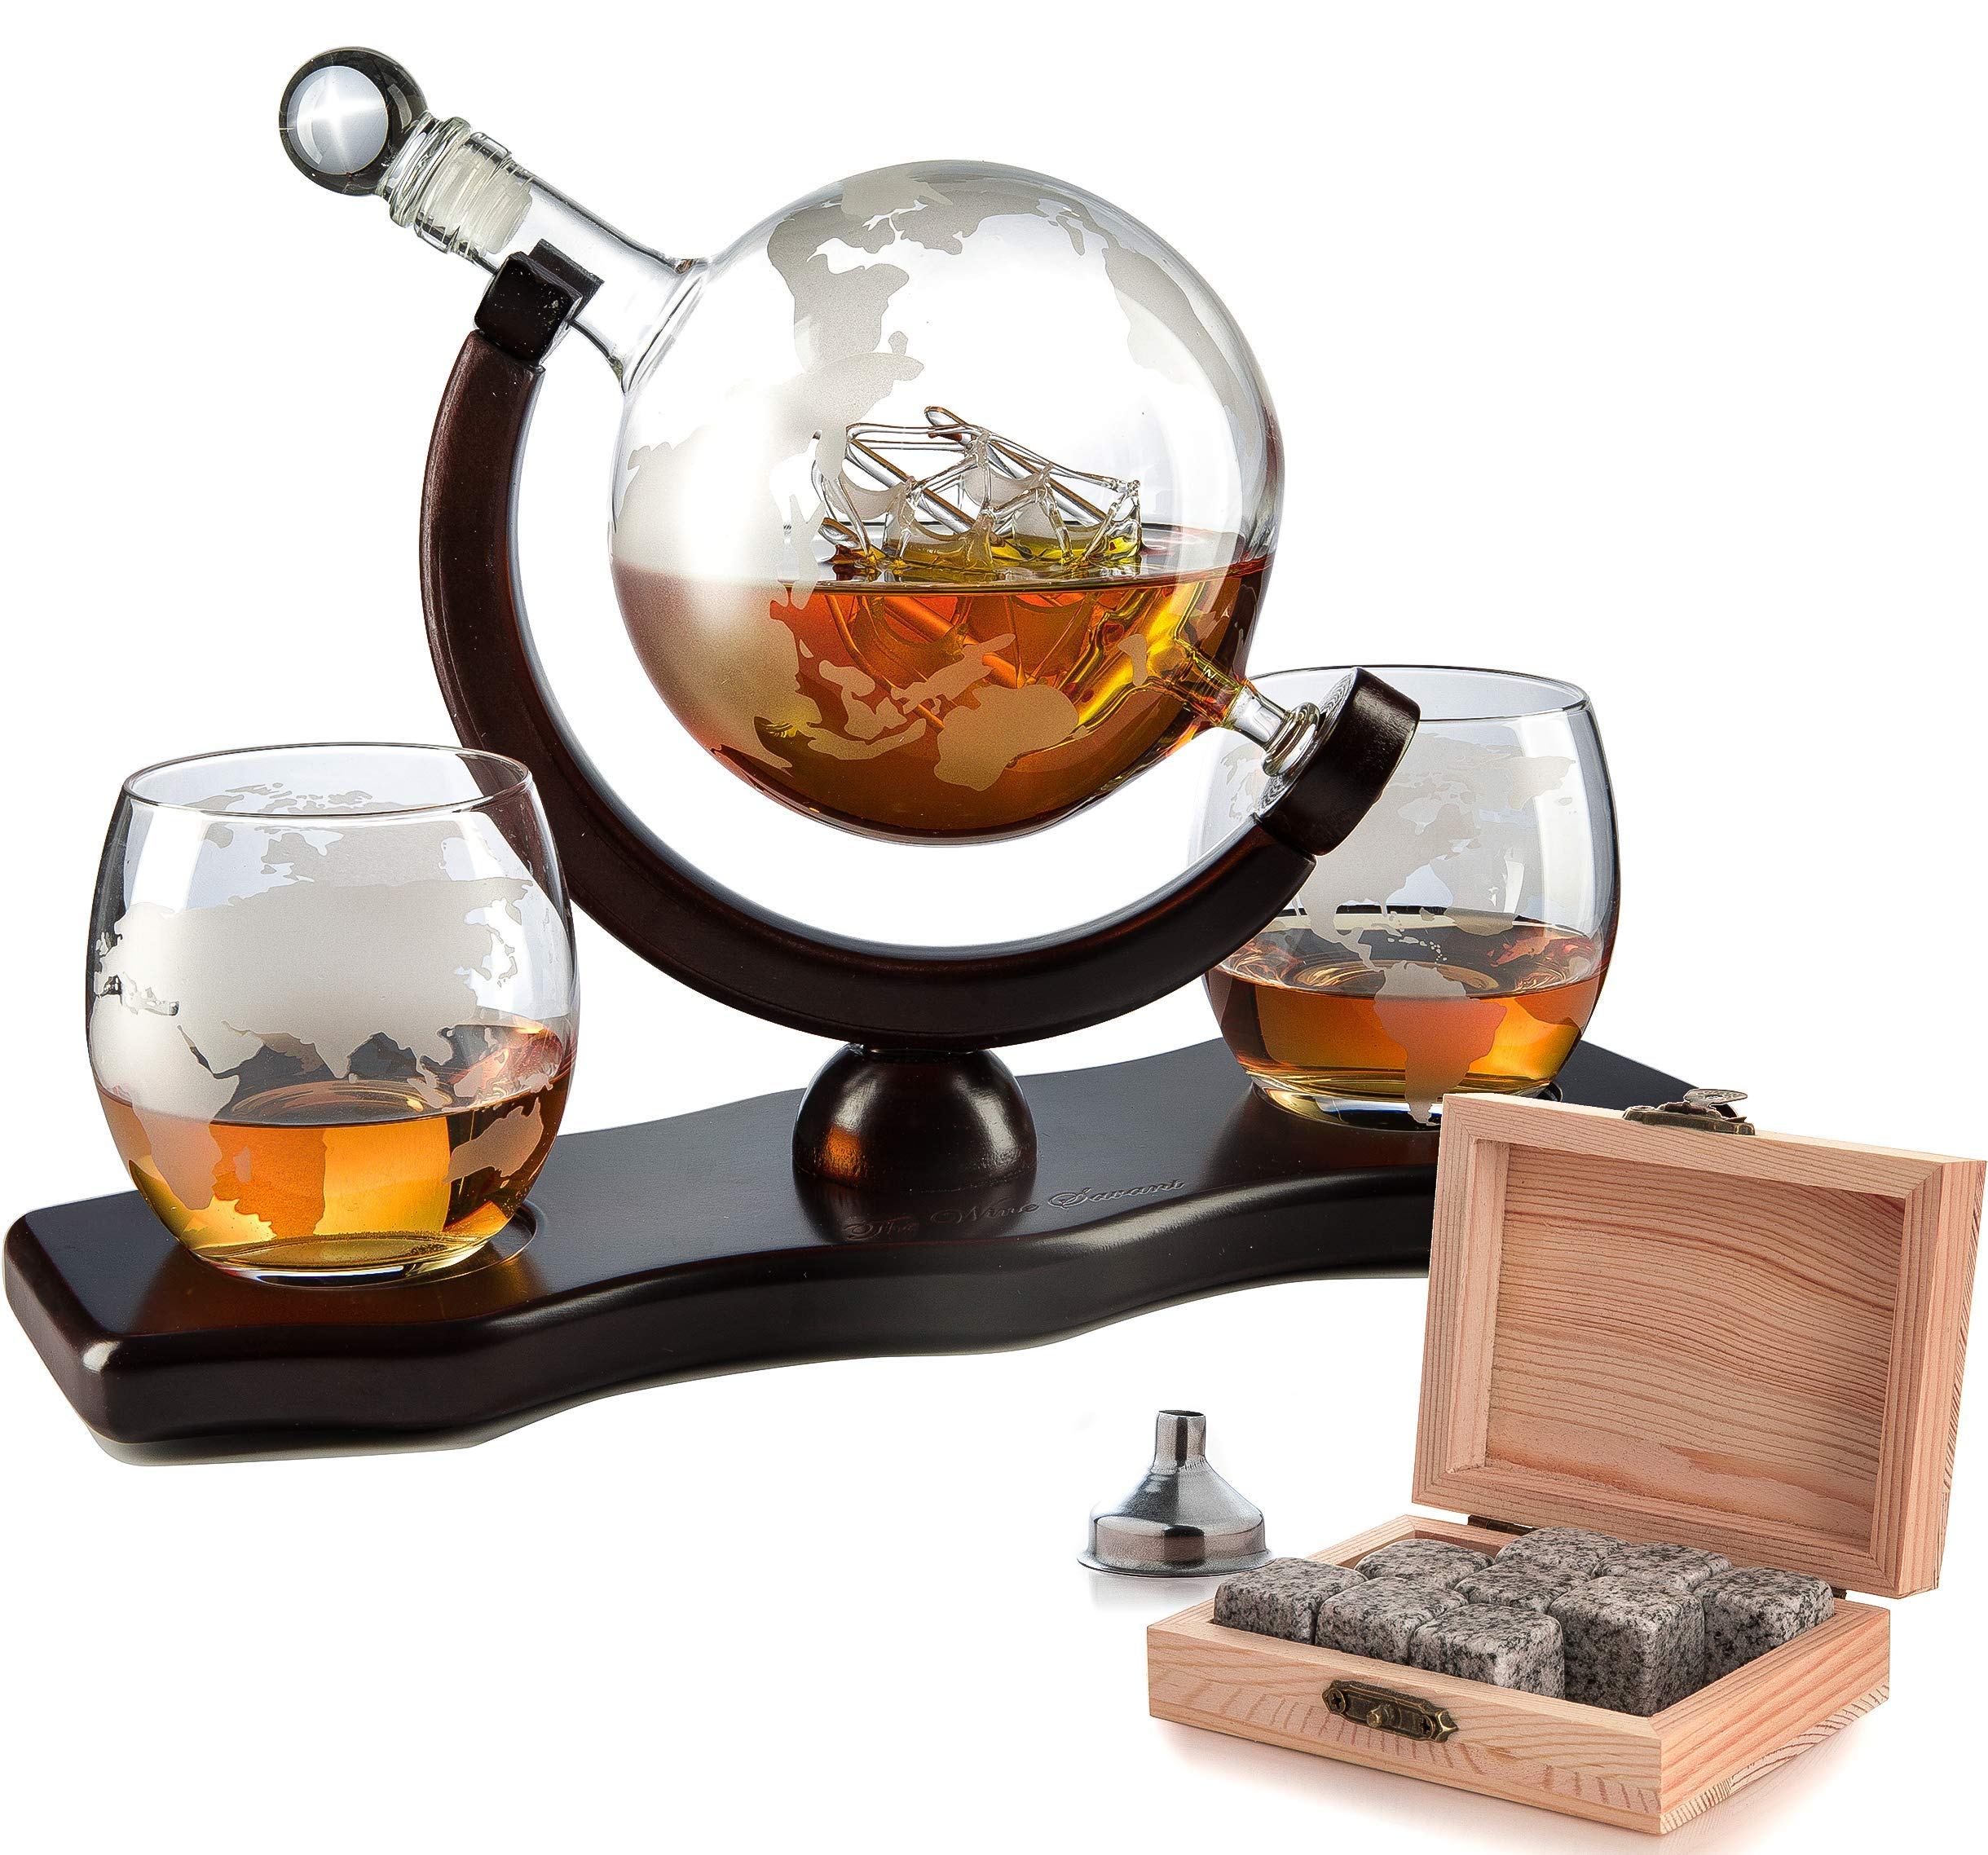 The Wine Savant World Decanter - With 2 Globe Glasses, Perfect Gift, Includes Whiskey Stones For Whiskey, Scotch, Bourbon or Wine Matching Globe Glasses, HOME BAR DECOR by The Wine Savant